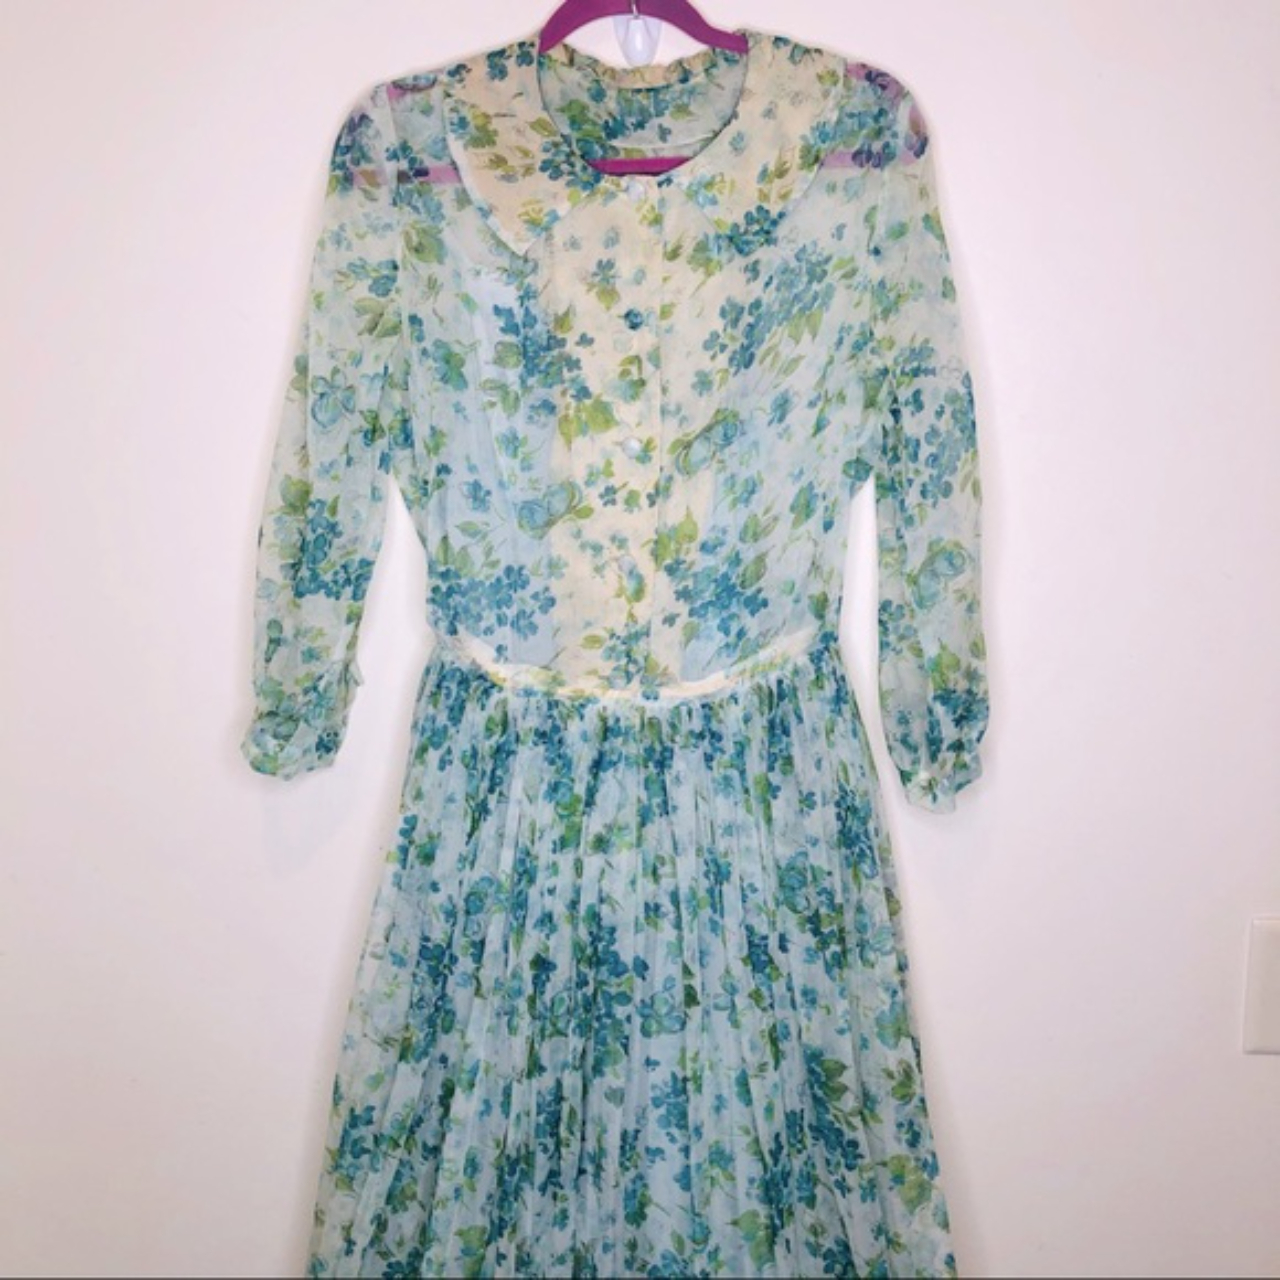 Product Image 1 - Beautiful and delicate sheer handmade